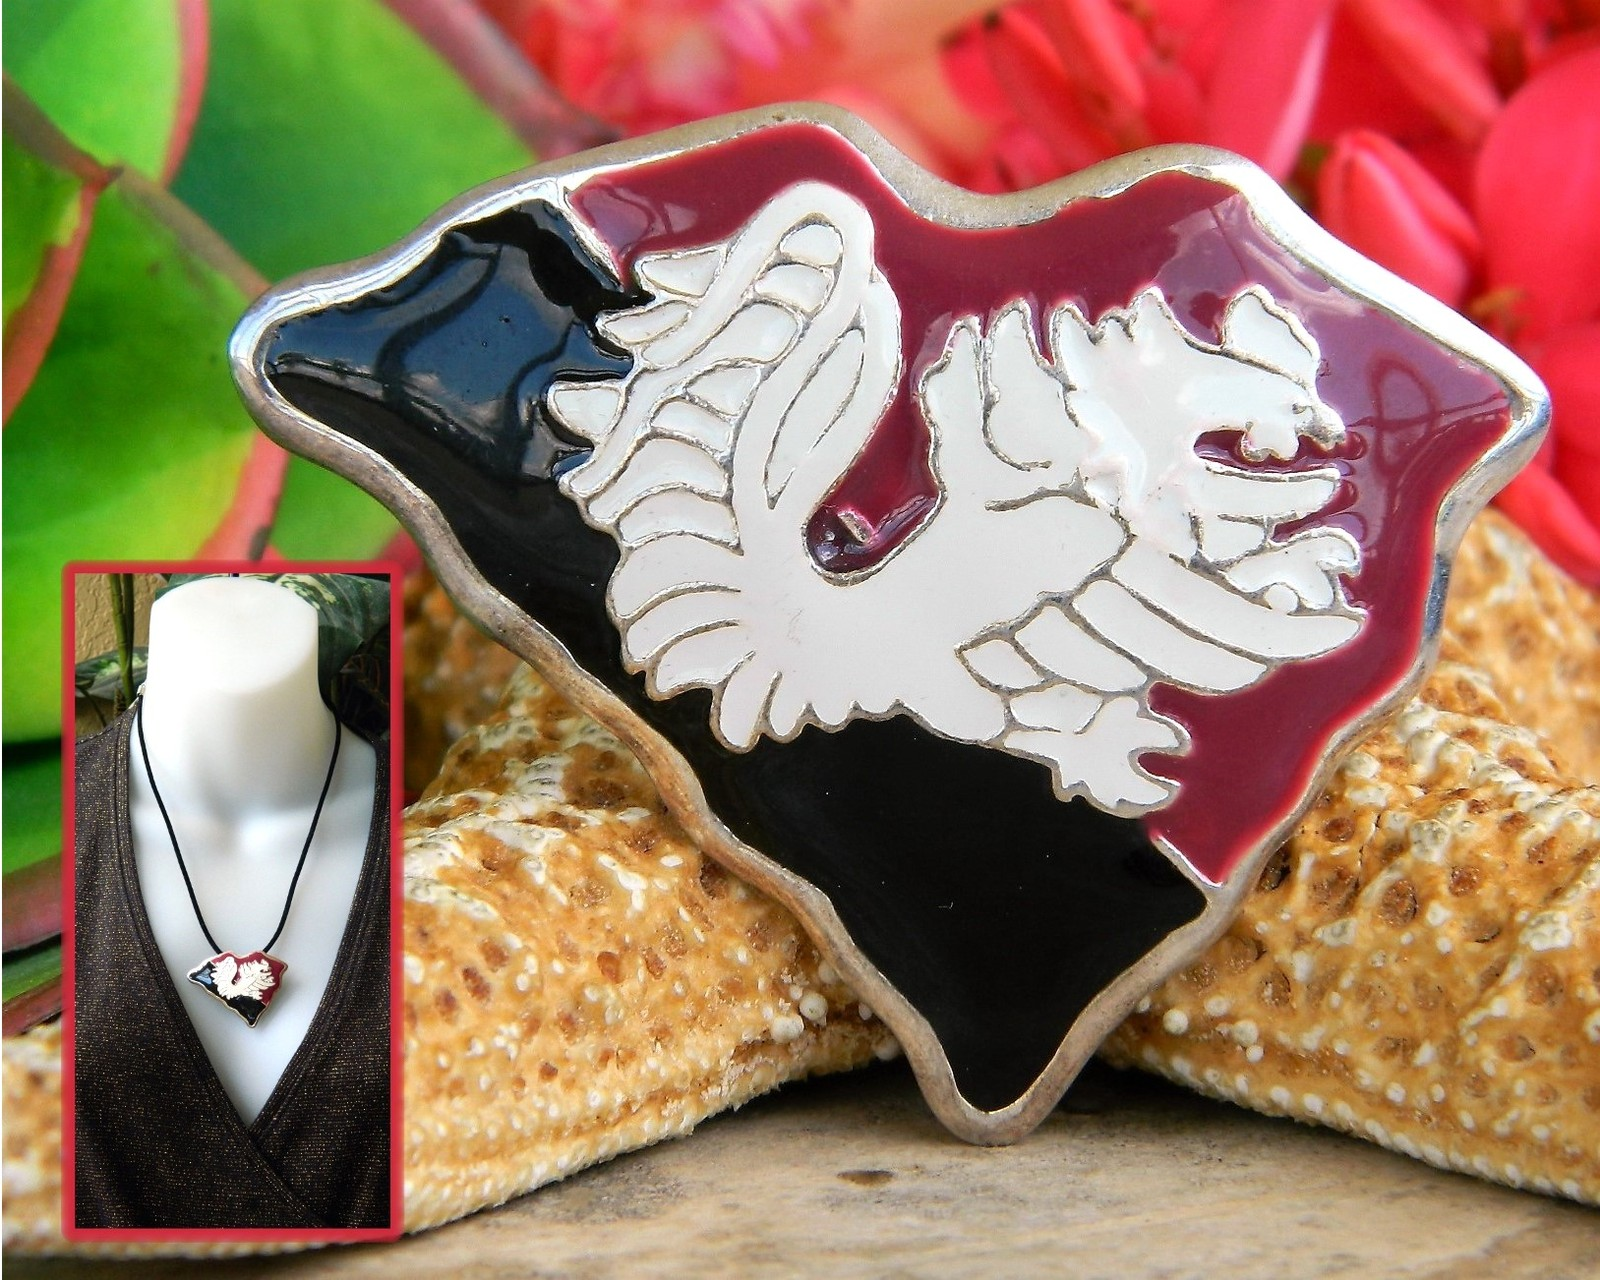 Fighting gamecock rooster garnet black pendant necklace brooch pin usc